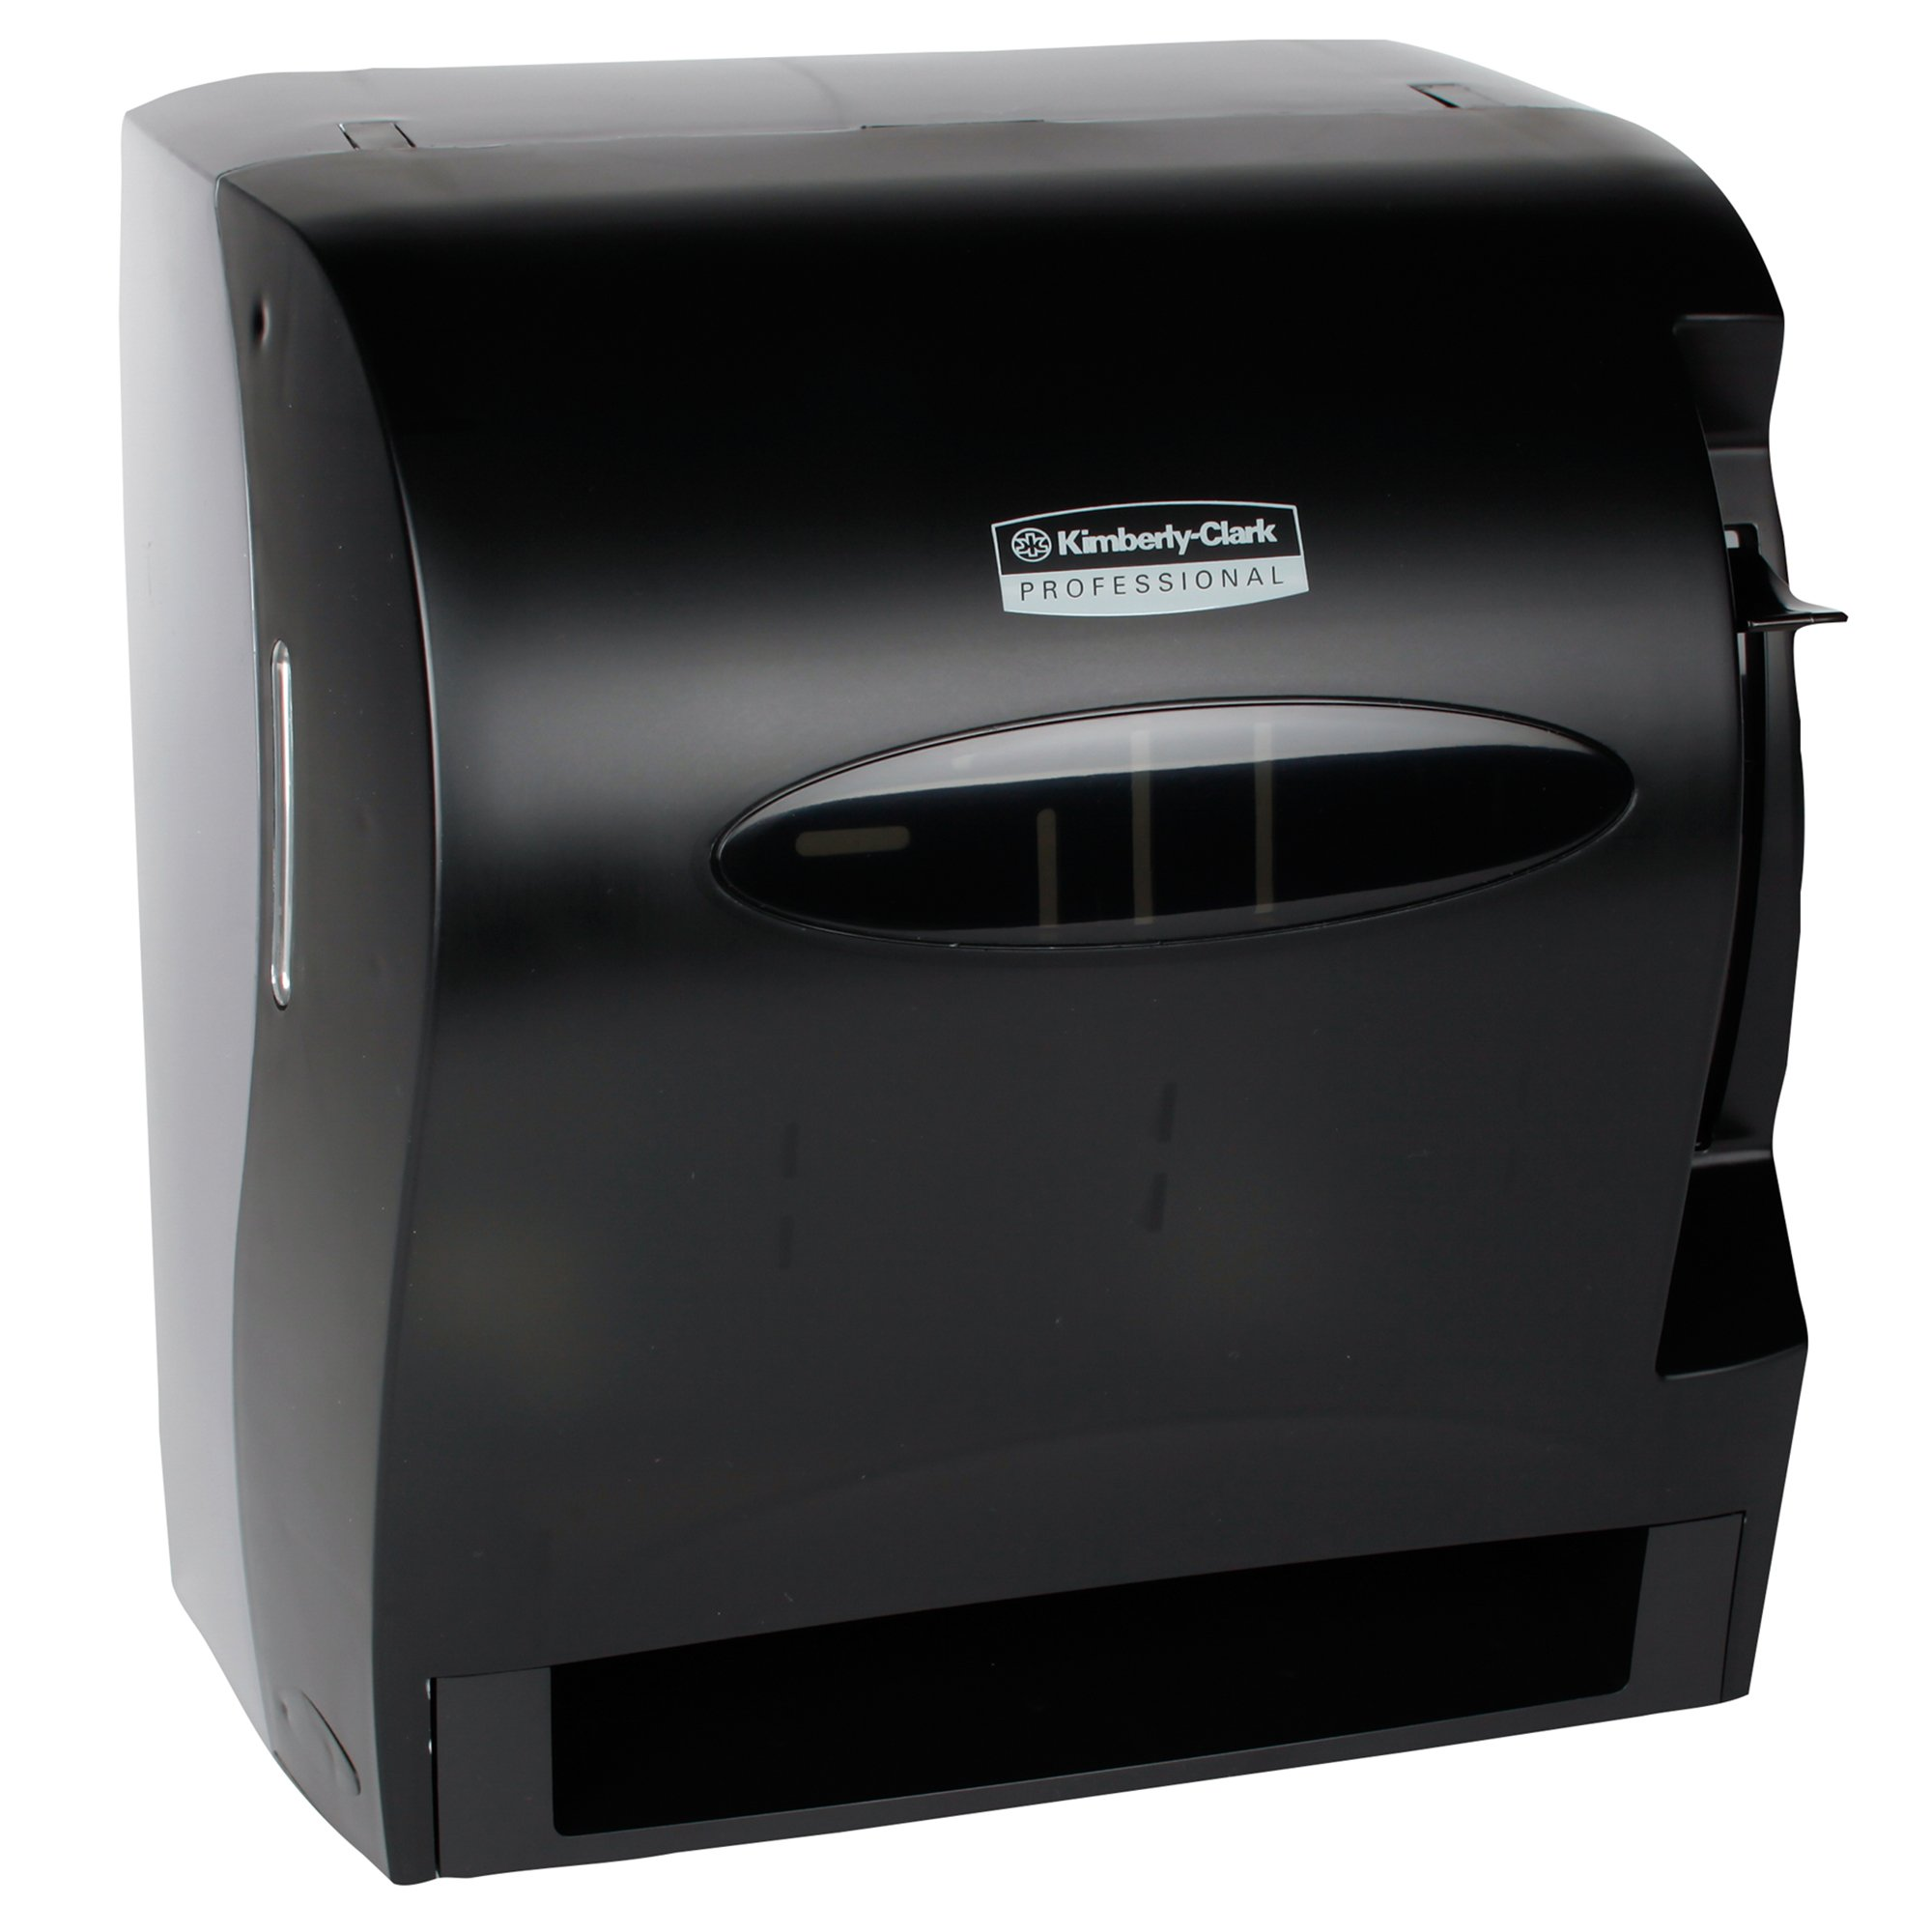 Kimberly Clark Levermatic Roll Paper Towels Dispenser (09765), Manual, Smoke (Black) by Kimberly-Clark Professional (Image #1)